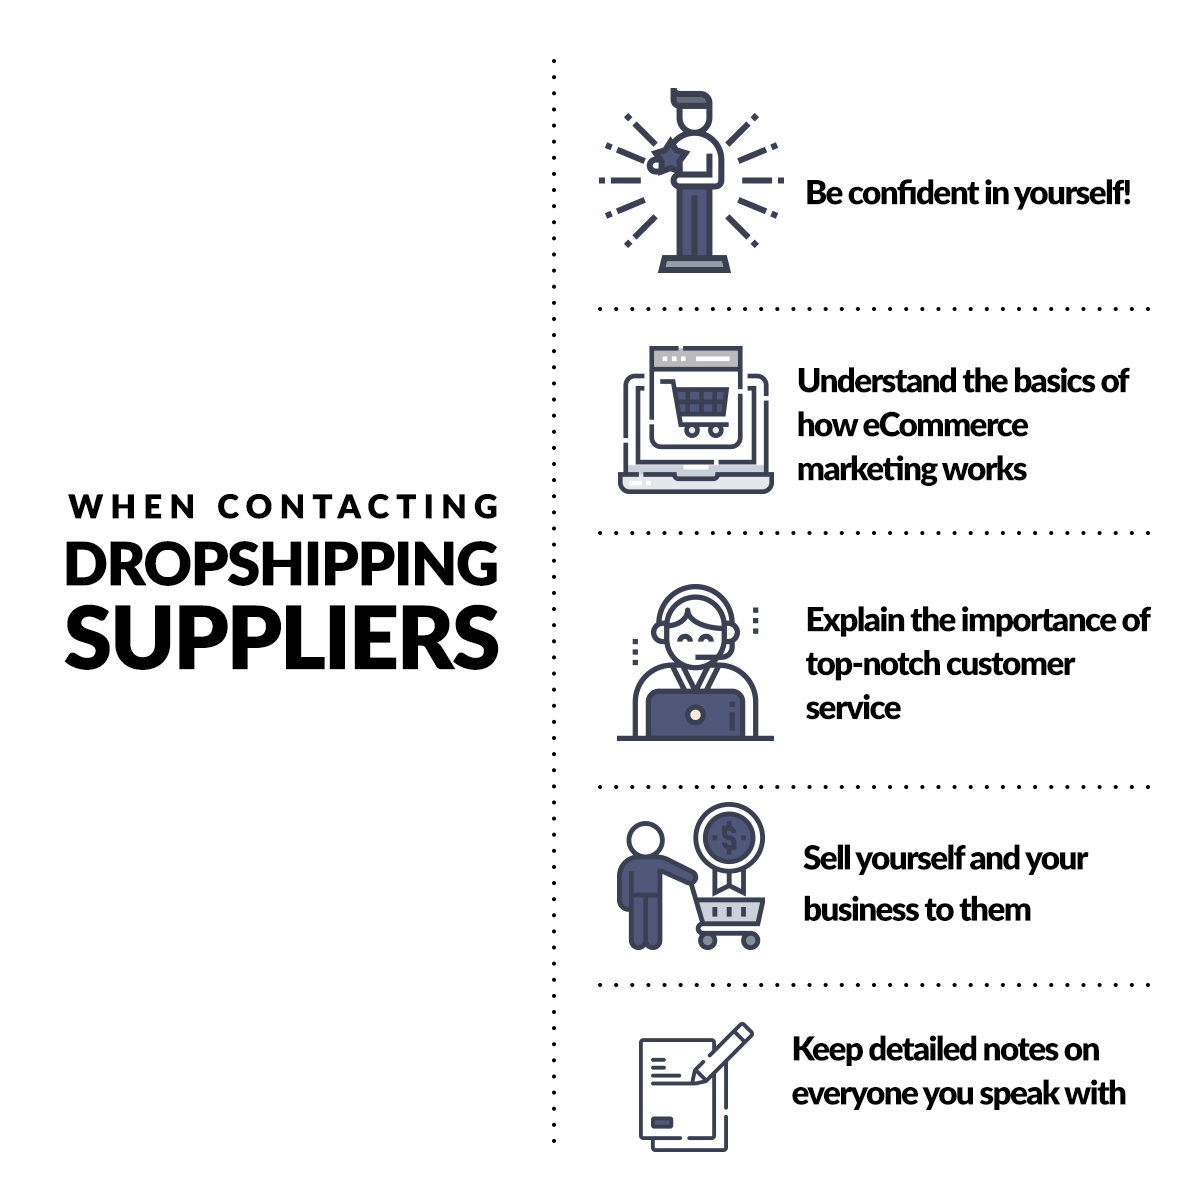 2019 dropshipping suppliers